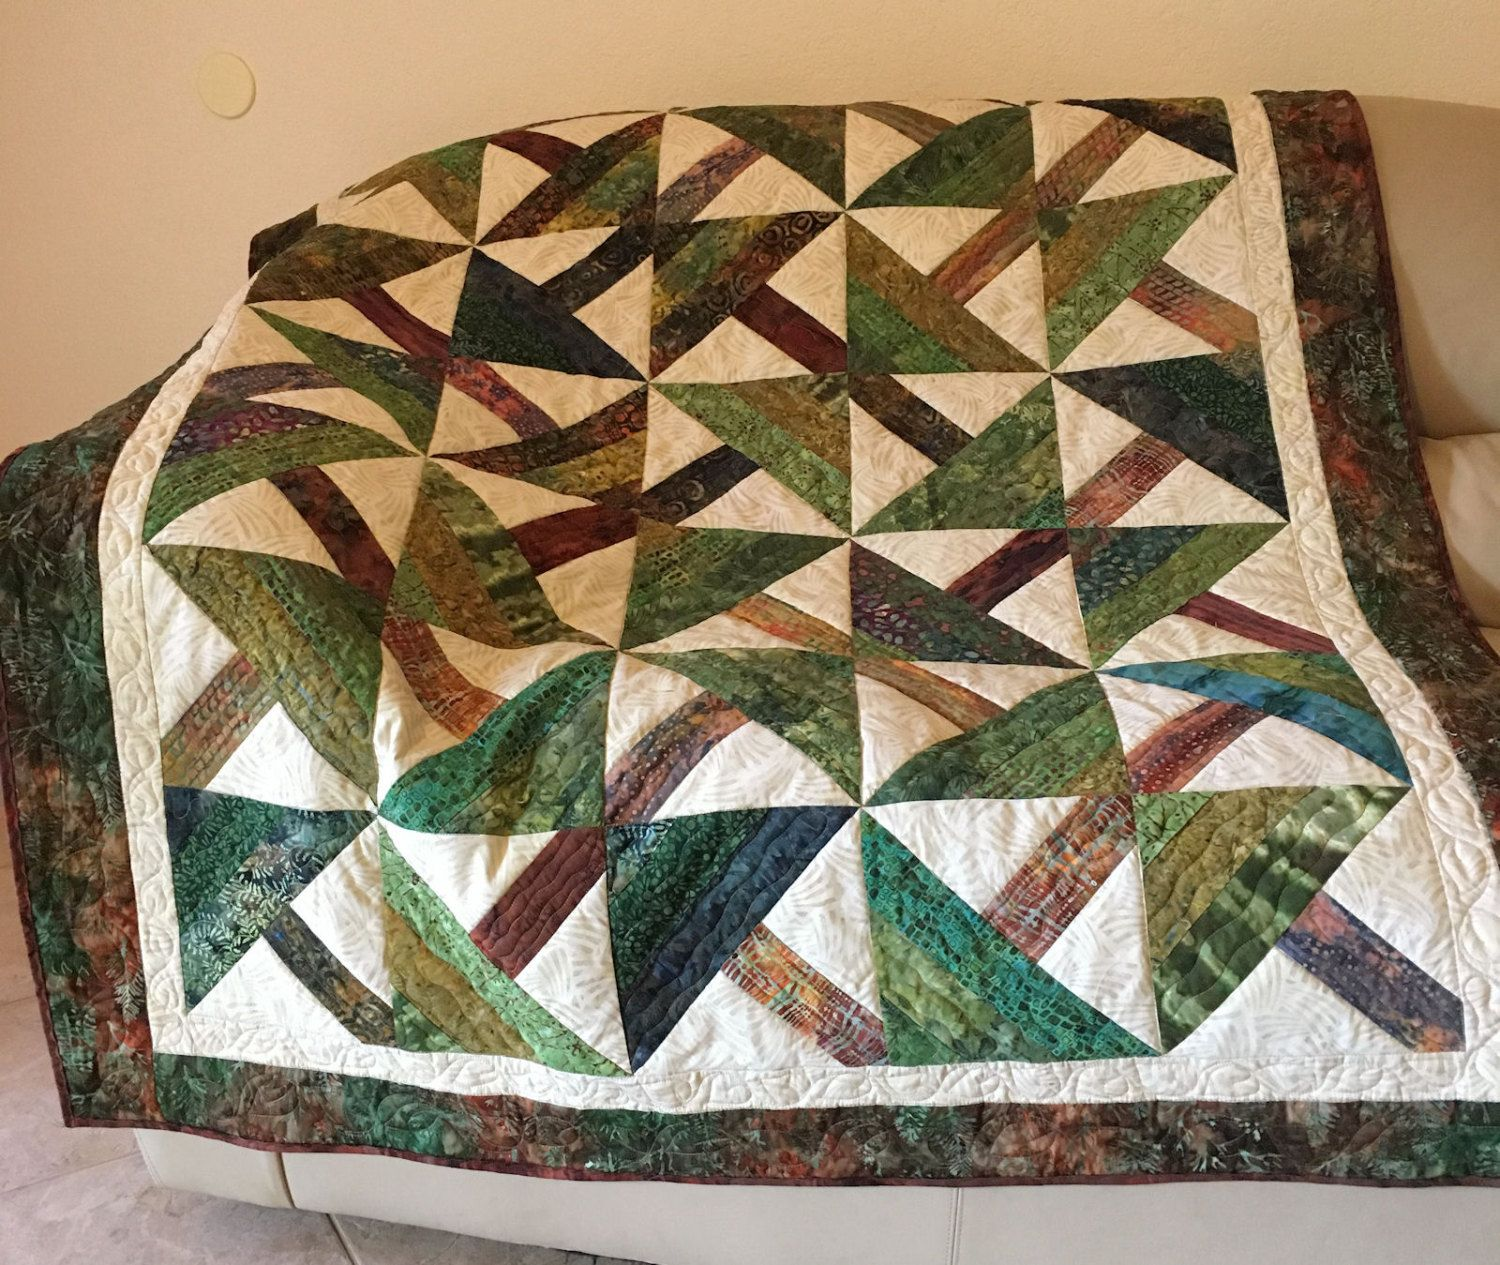 Quilted Sofa Throw or Lap Quilt, Green and Brown Pine Trees Batik ... : quilted lap throws - Adamdwight.com